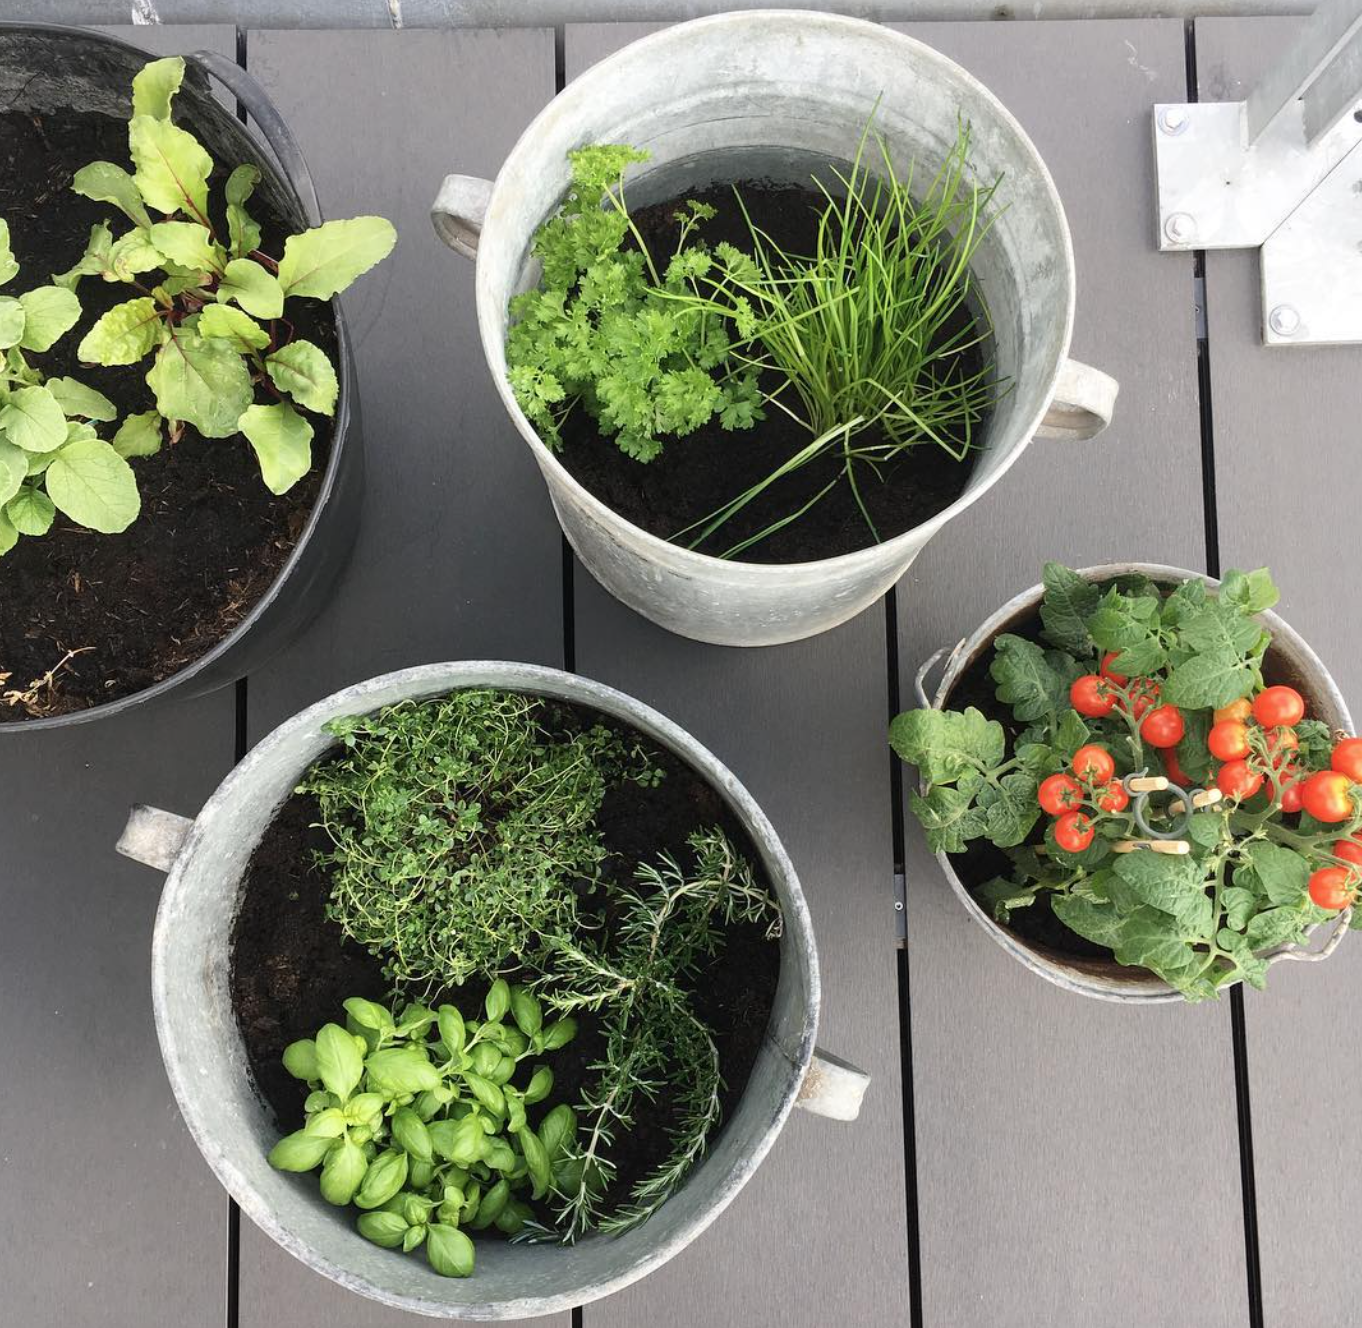 2. you don't need a lot of space or skill to have an herb garden